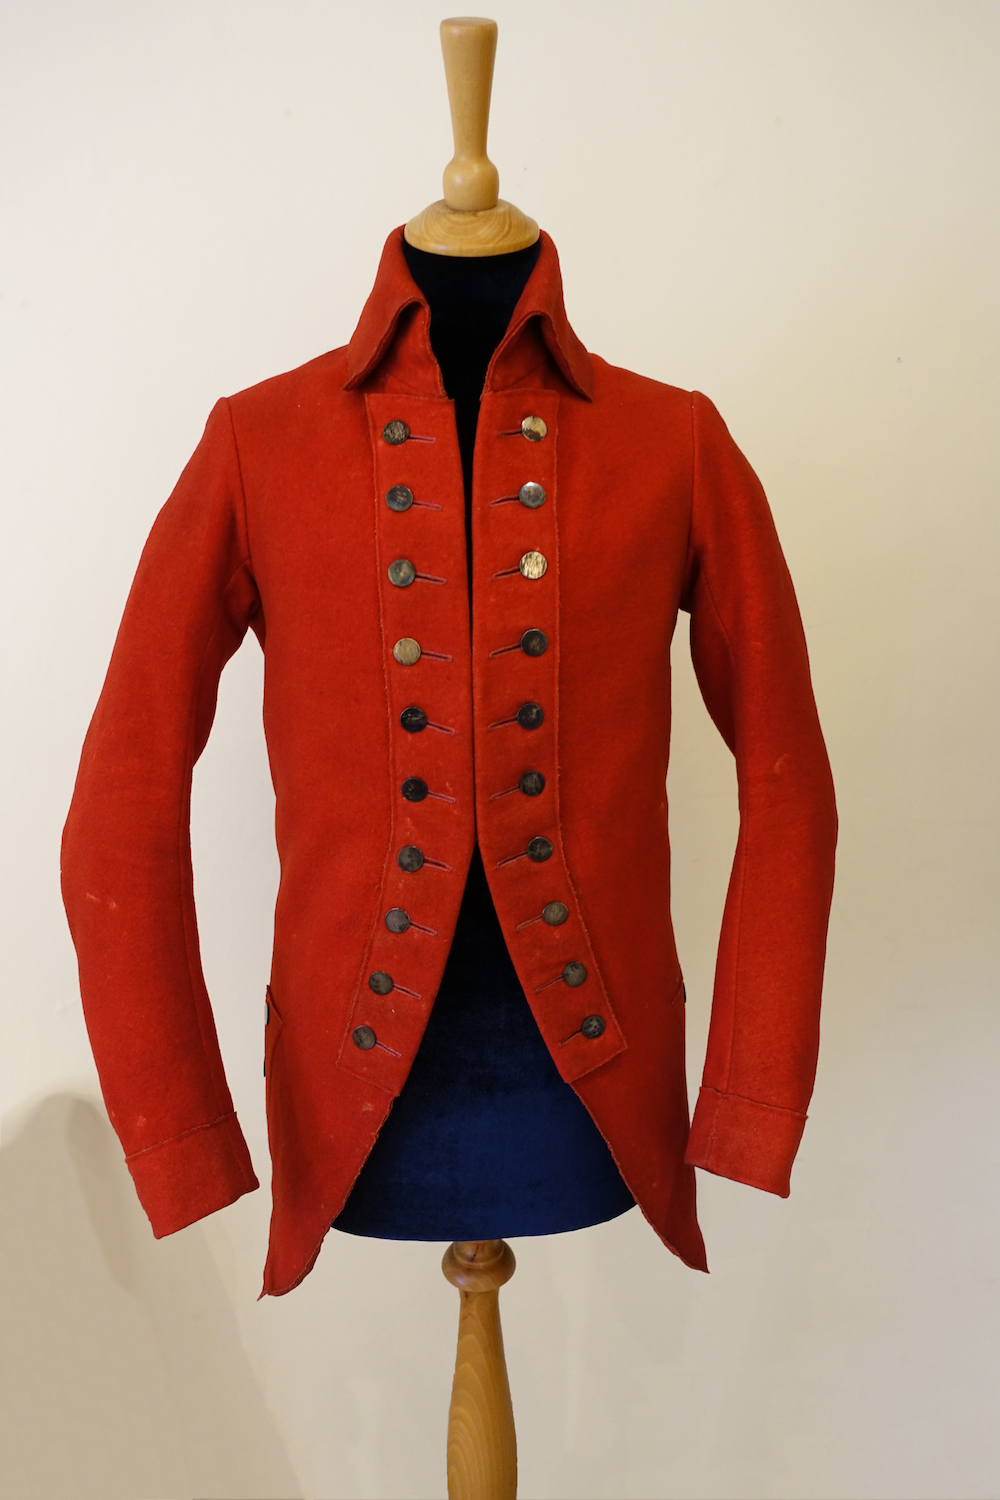 Red riding coat, believed to have belonged to Jane Austen's brother Frank when he was a child